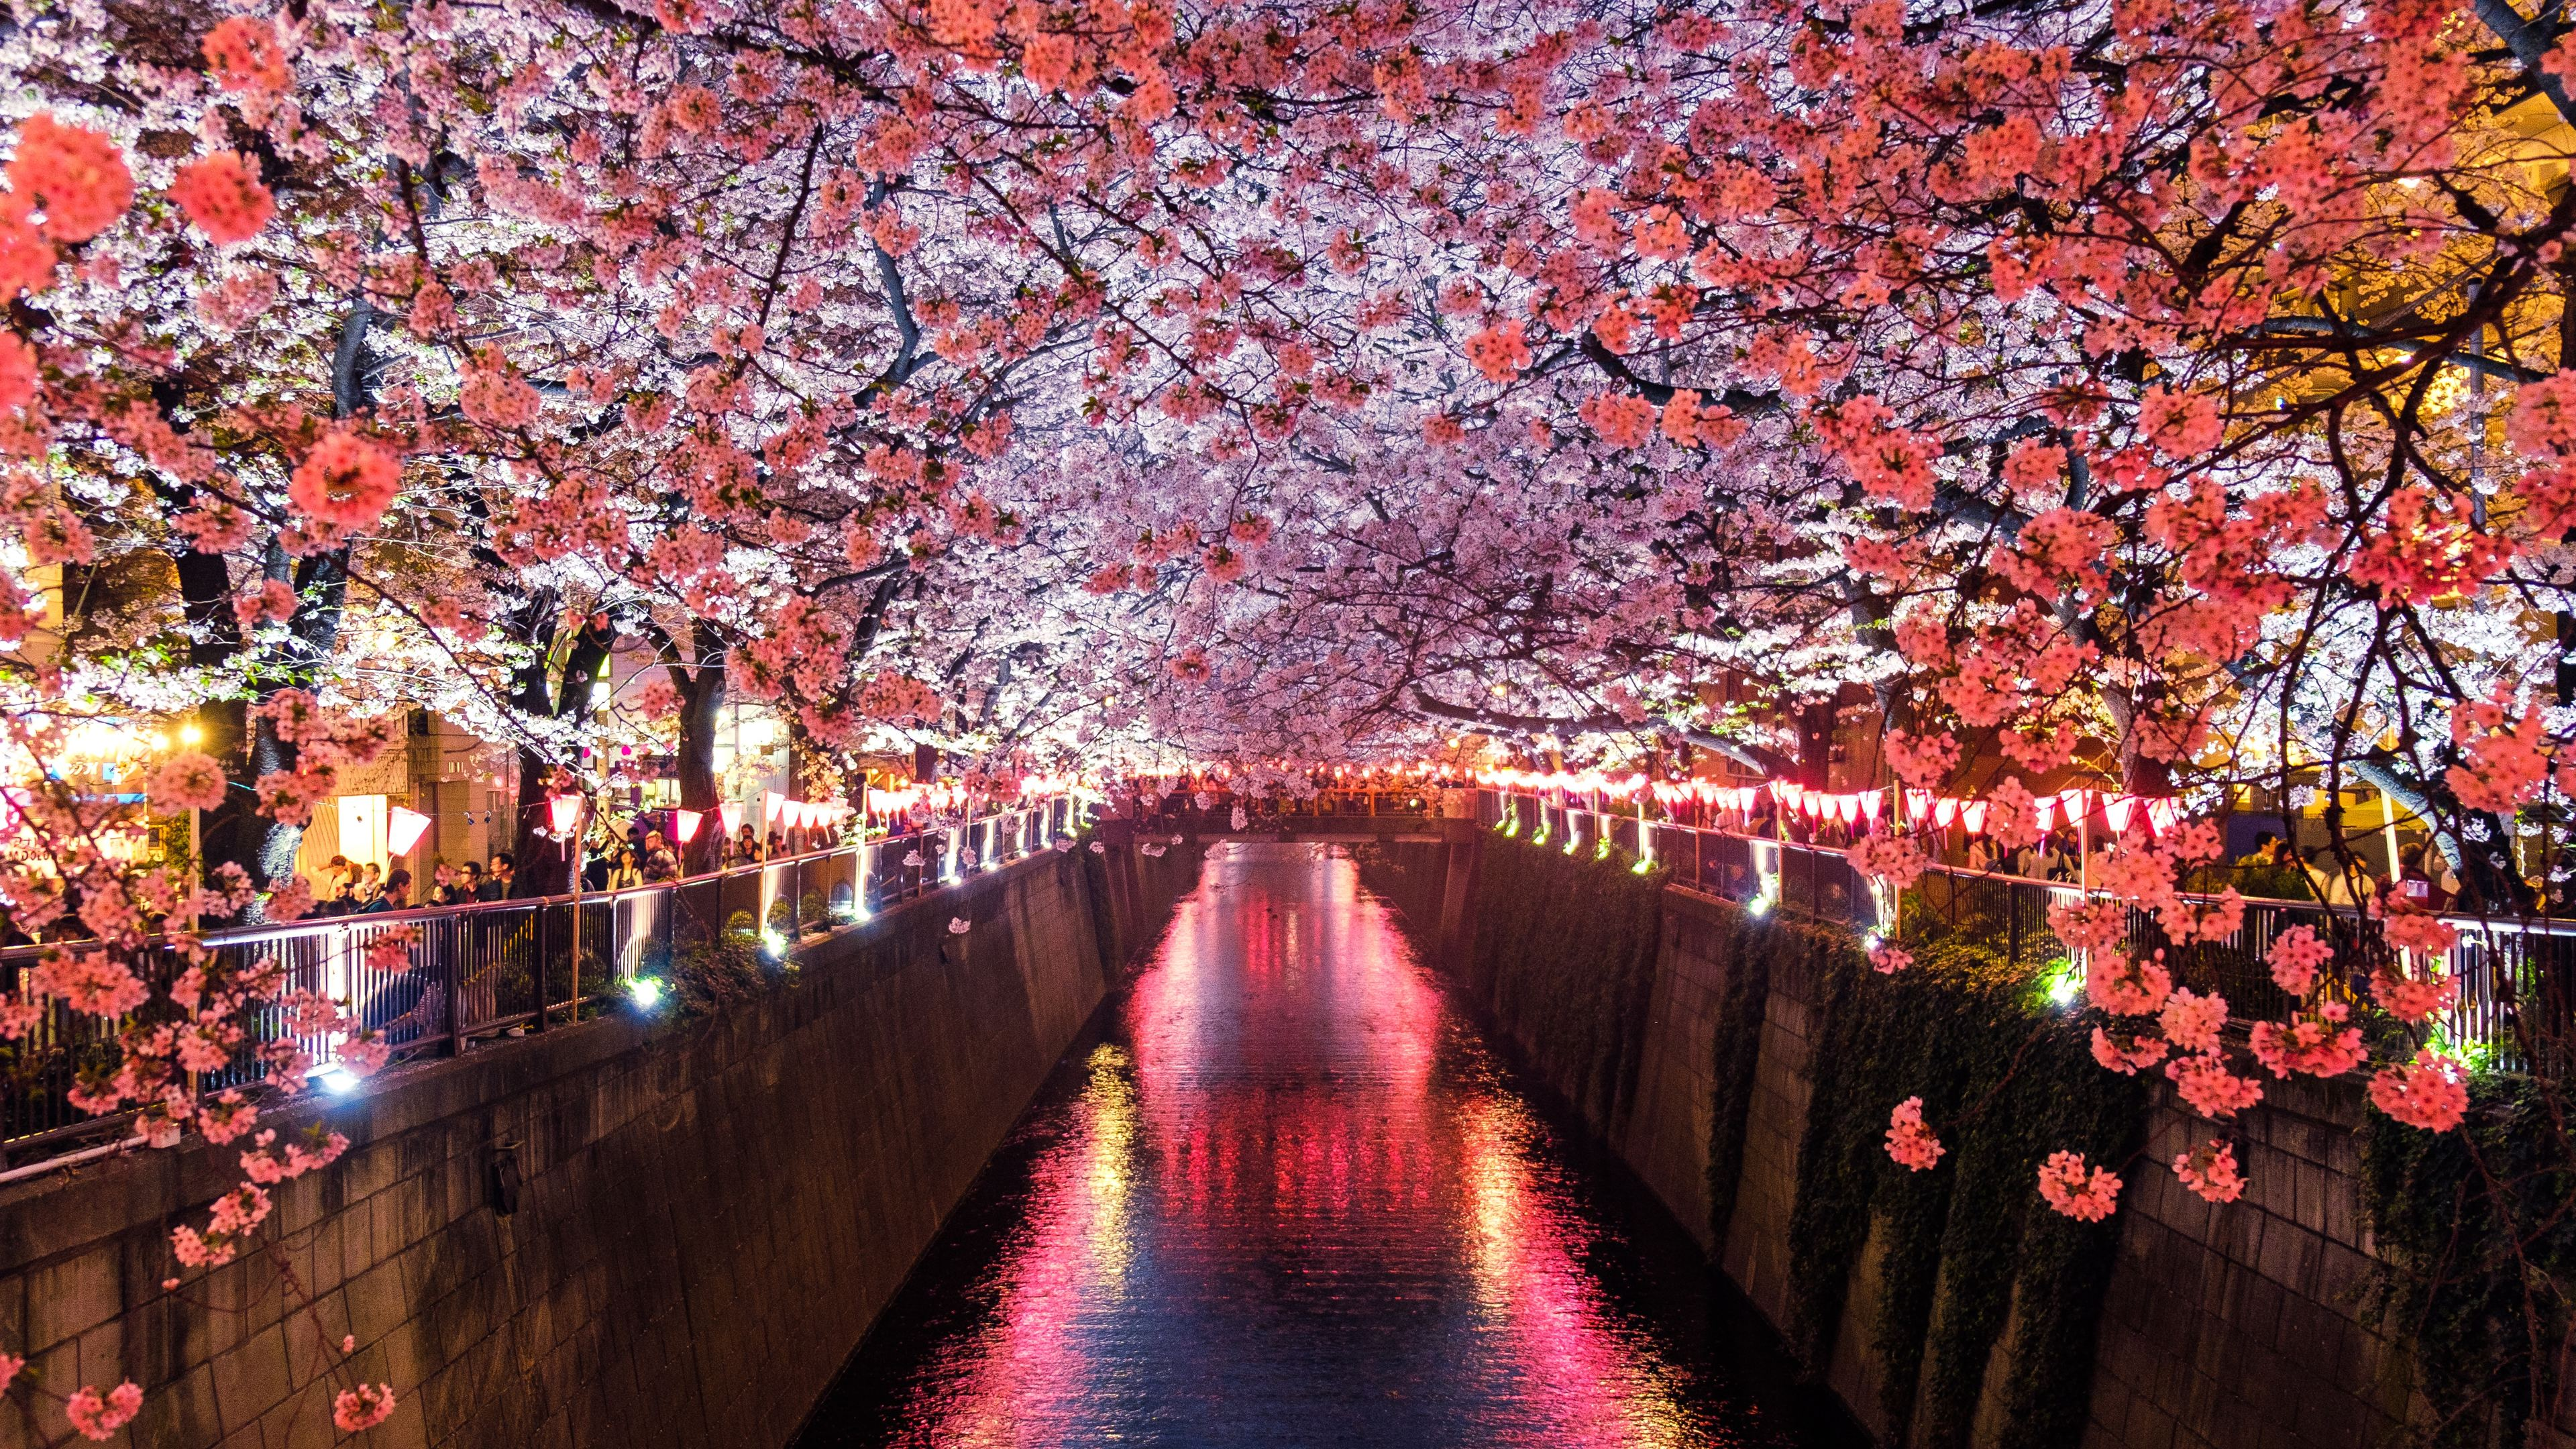 cherry blossom trees covering river canal 1540142573 - Cherry Blossom Trees Covering River Canal - trees wallpapers, river wallpapers, nature wallpapers, hd-wallpapers, cherry wallpapers, 5k wallpapers, 4k-wallpapers